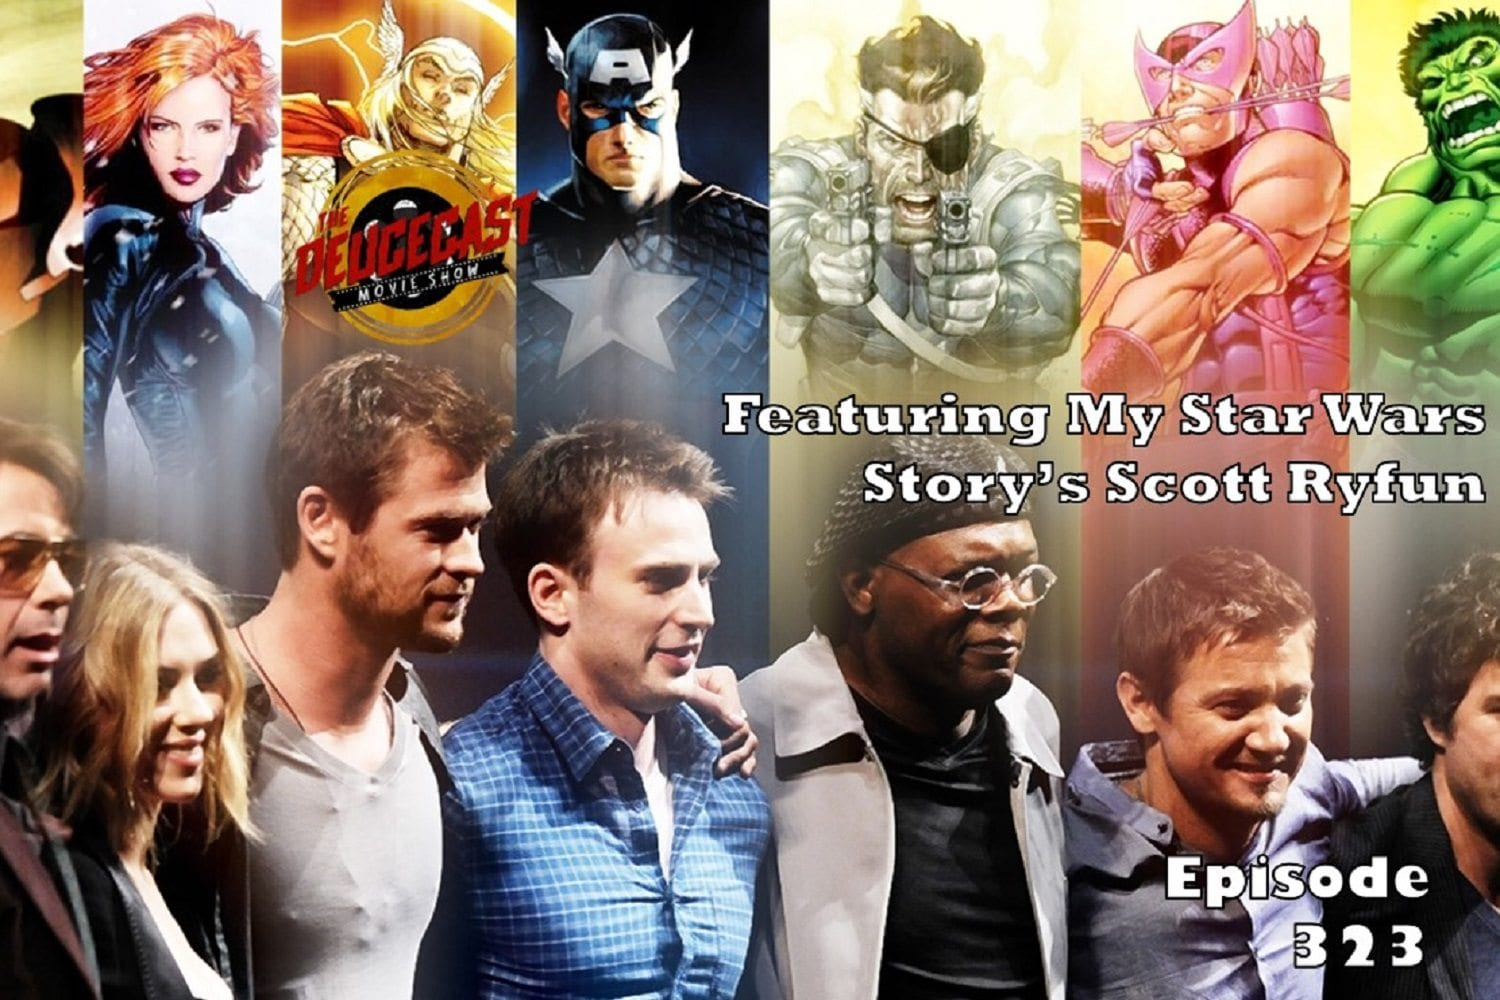 The Deucecast Movie Show #323 See This Not That - The Avengers